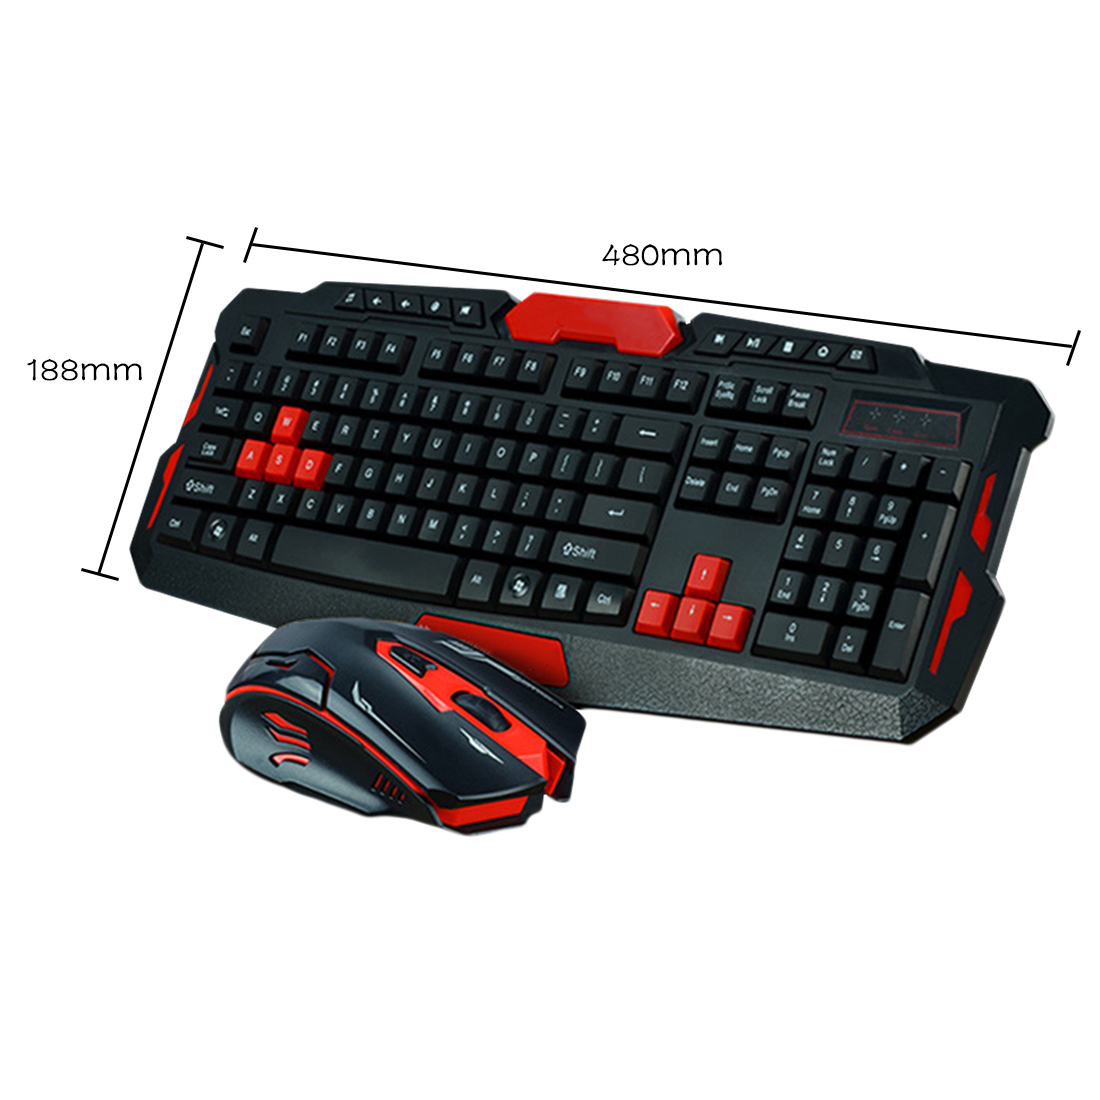 Etmakit New Wireless Keyboard Mouse Set Etmakit New Wireless Keyboard Mouse Set HTB1k45tSVXXXXaoXVXXq6xXFXXX8